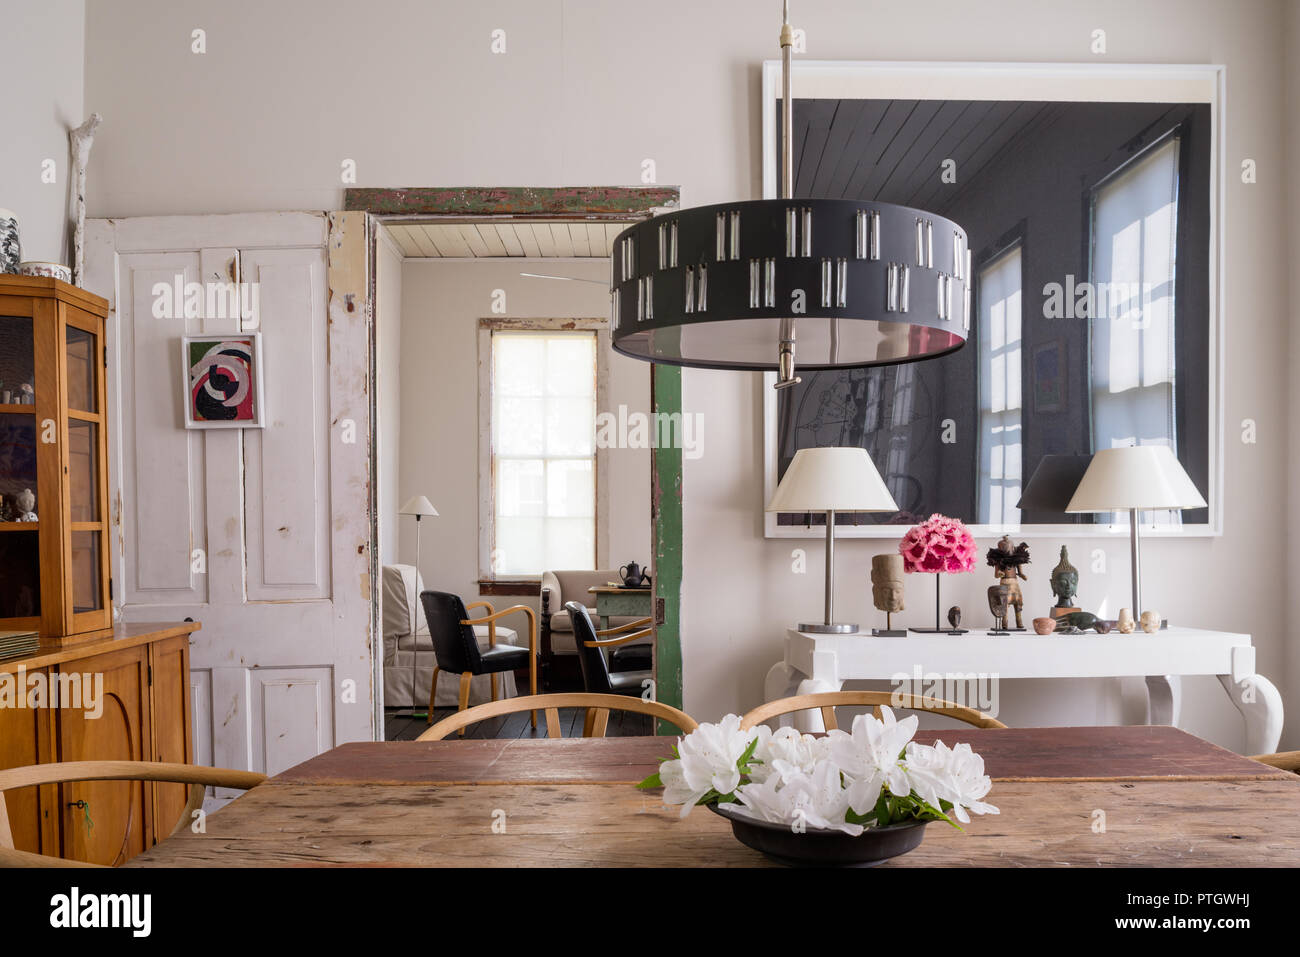 c18 New England drop leaf table and Wishbone chairs by Hans J Wegner. Console by Daryl Lauster with print by Richard Serra. - Stock Image